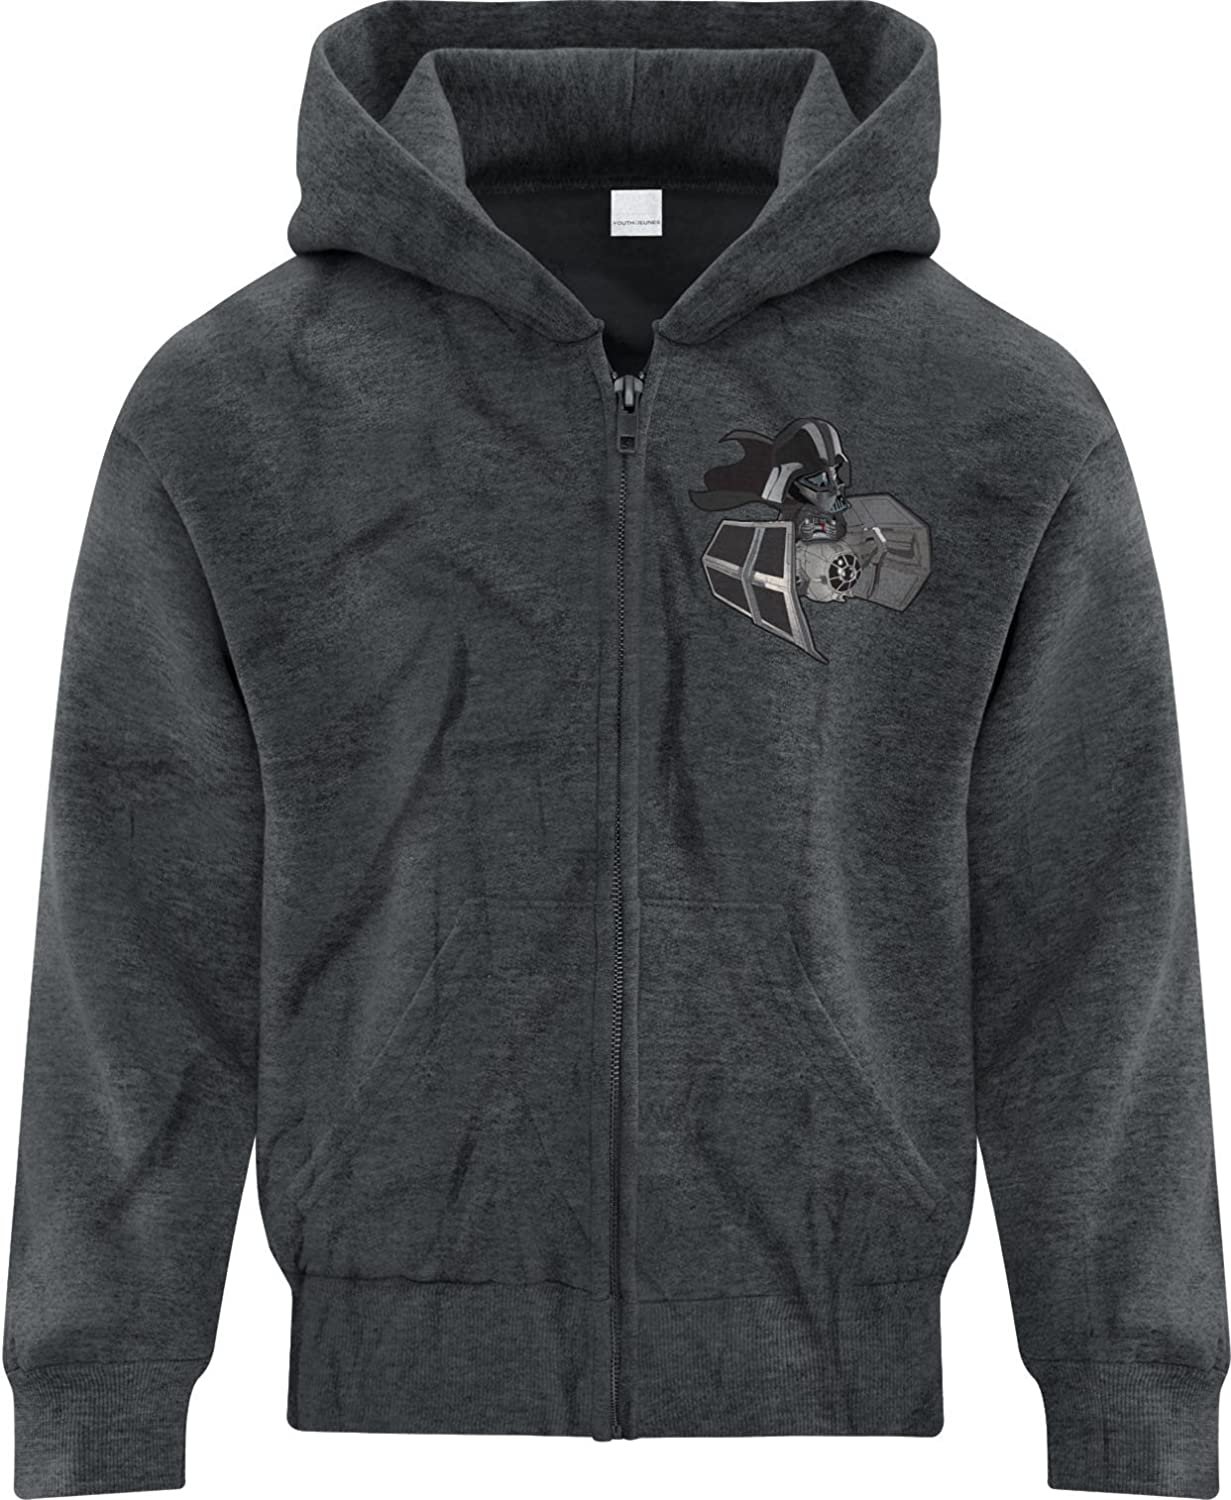 BSW Youth Girls Baby Darth Vader Star Wars Tie Fighter Zip Hoodie